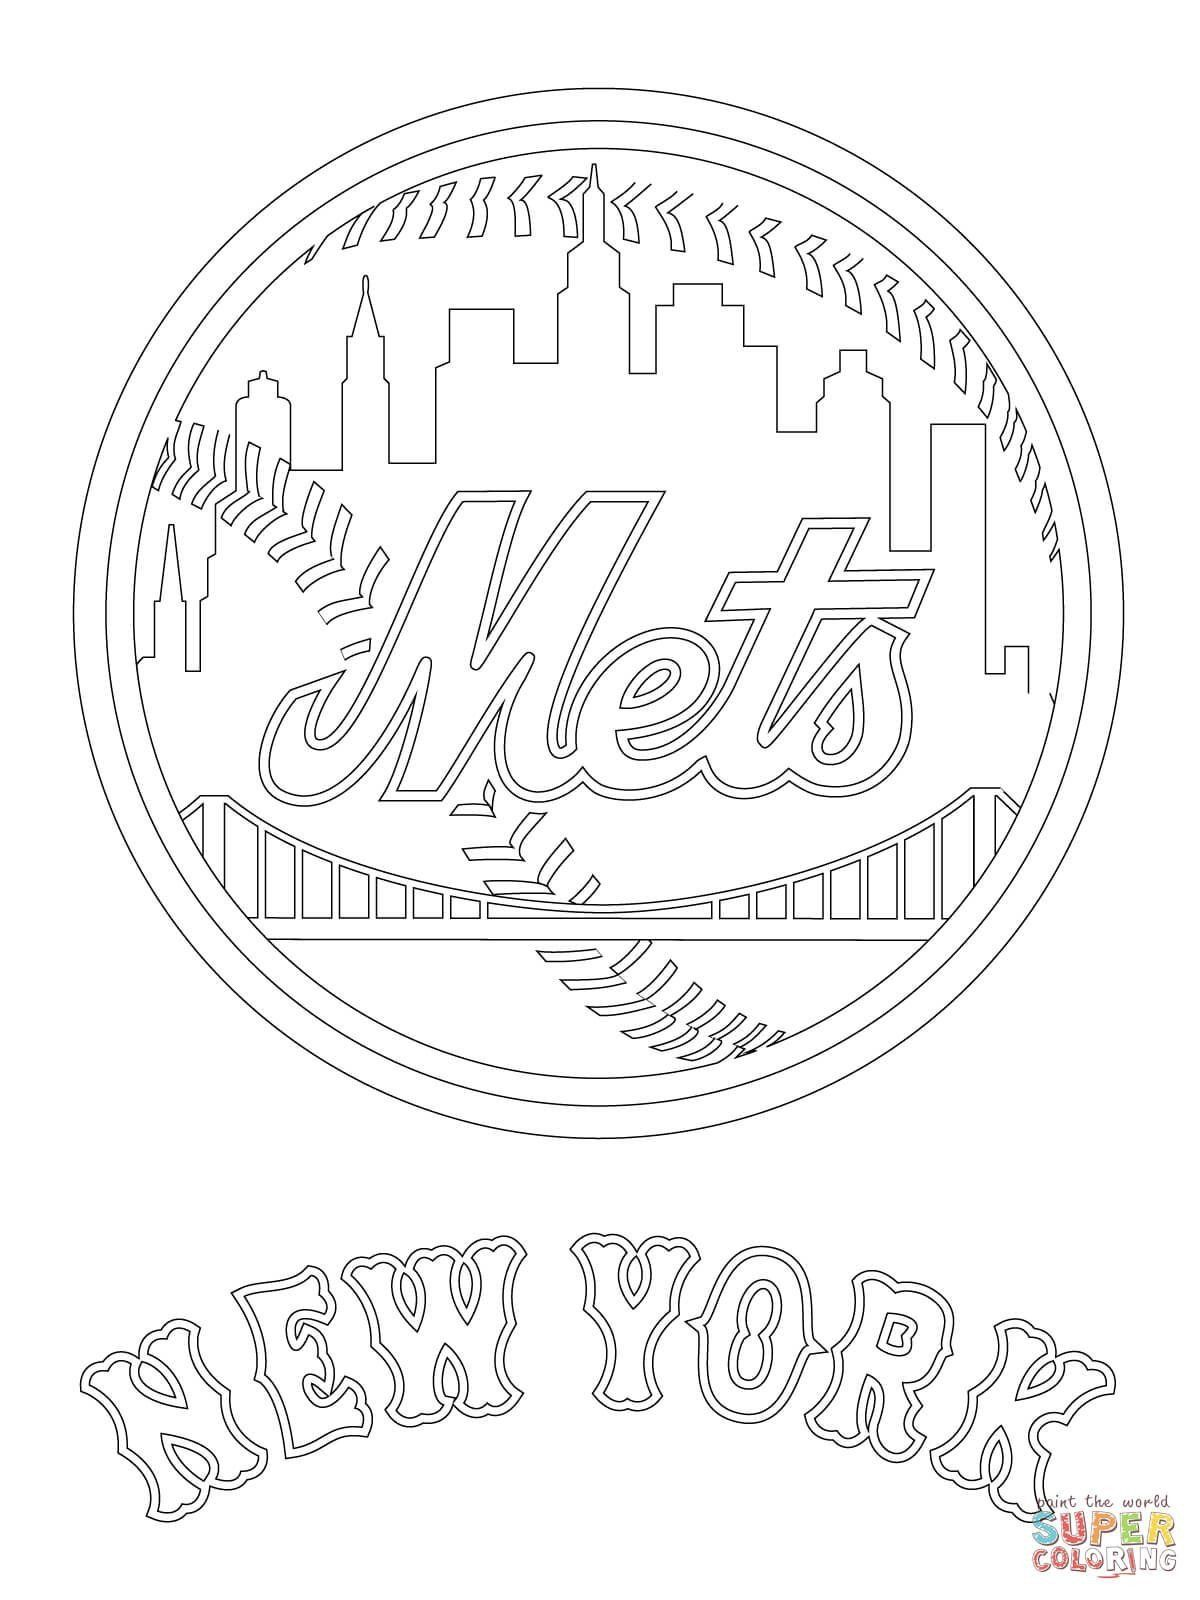 New York Yankees Coloring Pages Free - Ferrisquinlanjamal